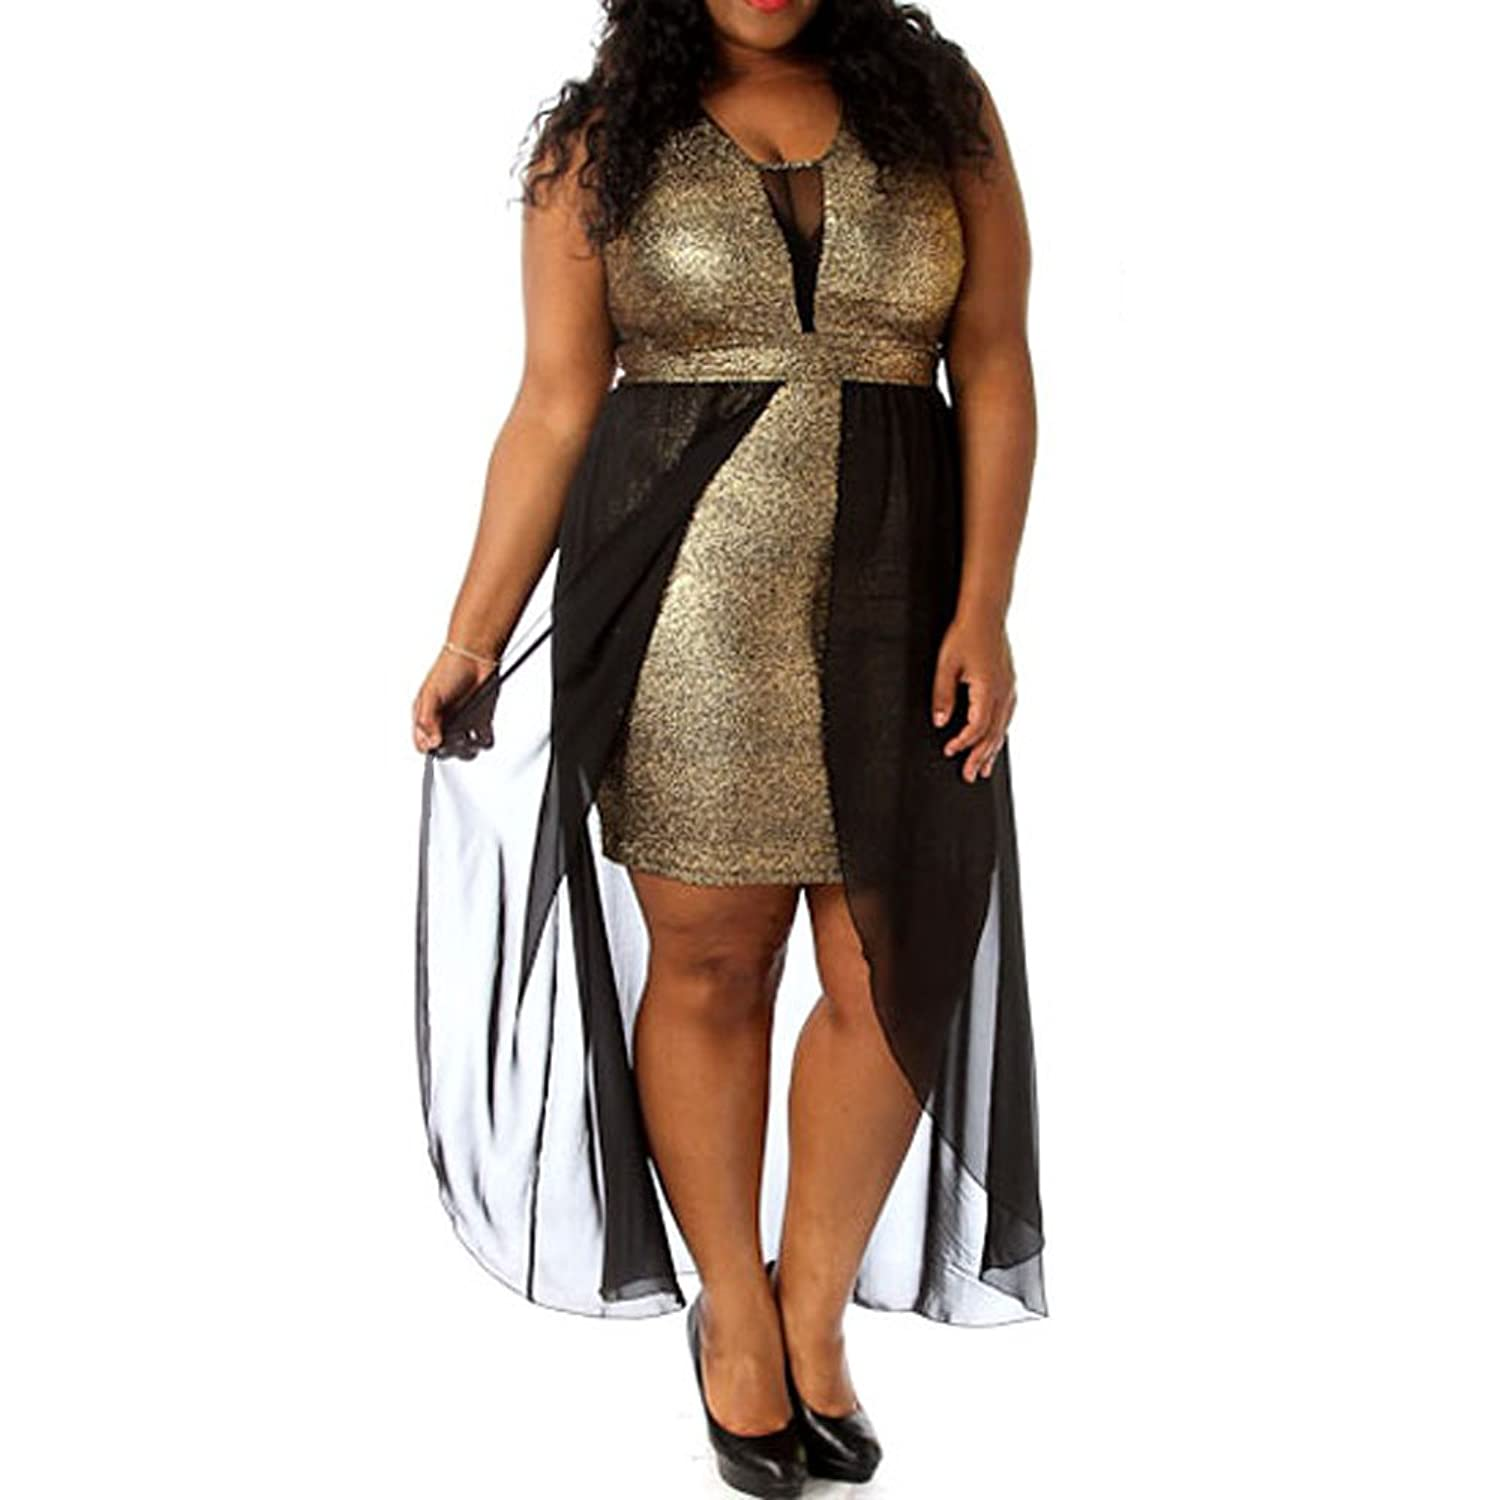 8b40a9f87e Metallic dress fully lined inside. Padded at chest. Black chiffon hi-low  design. Stretchy mesh at v neck and back. Stunning metallic gold bodice.